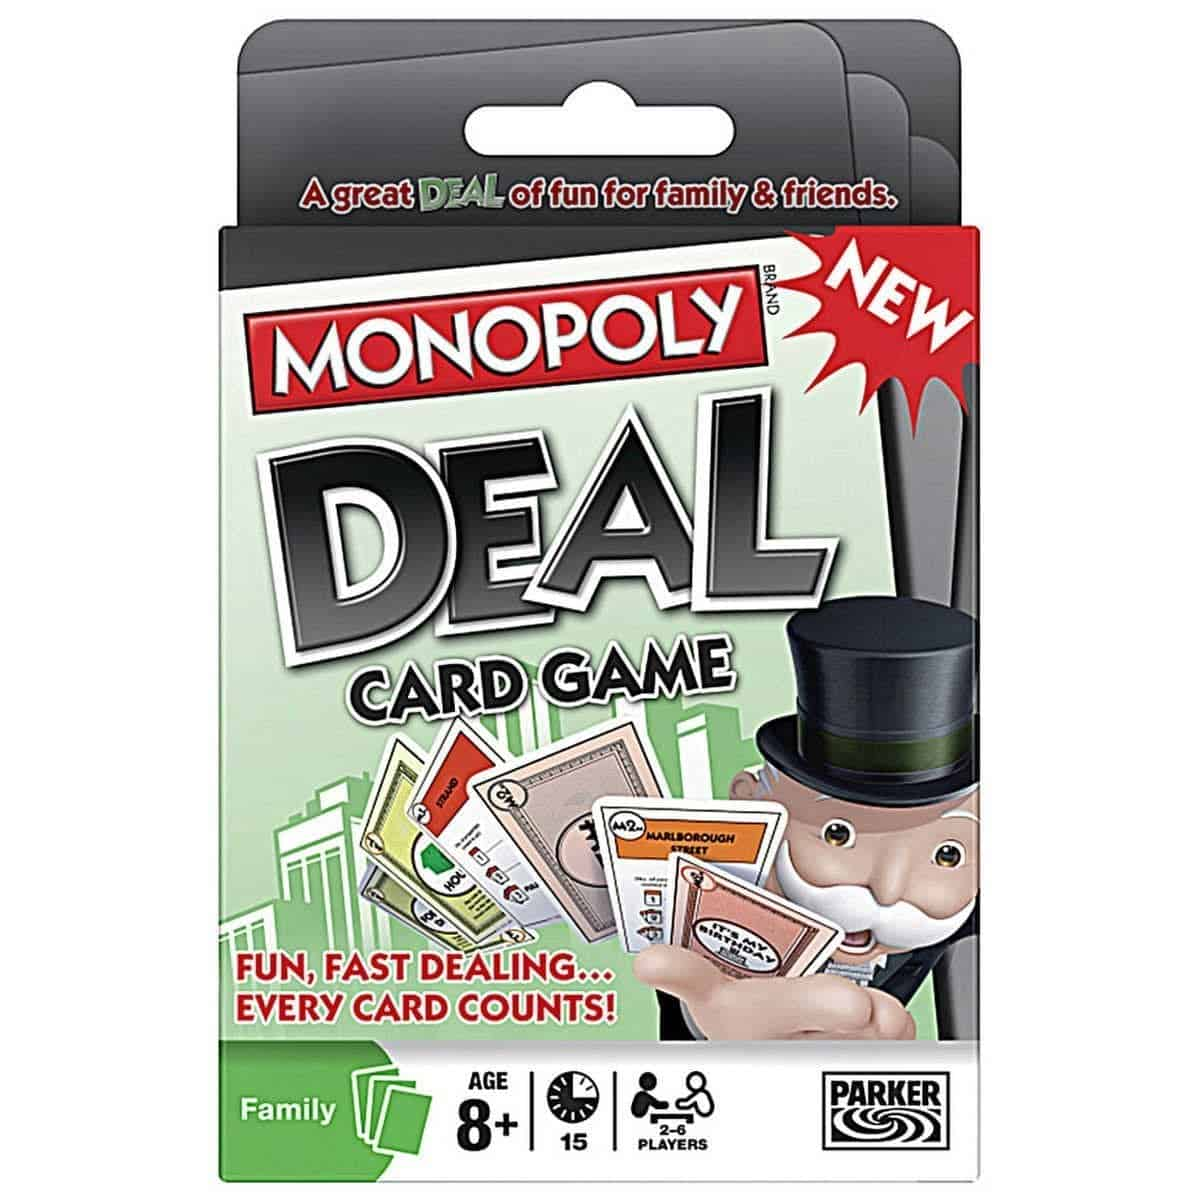 10+ Amazing Card Games for your Family: Monopoly Deal | www.thepinningmama.com